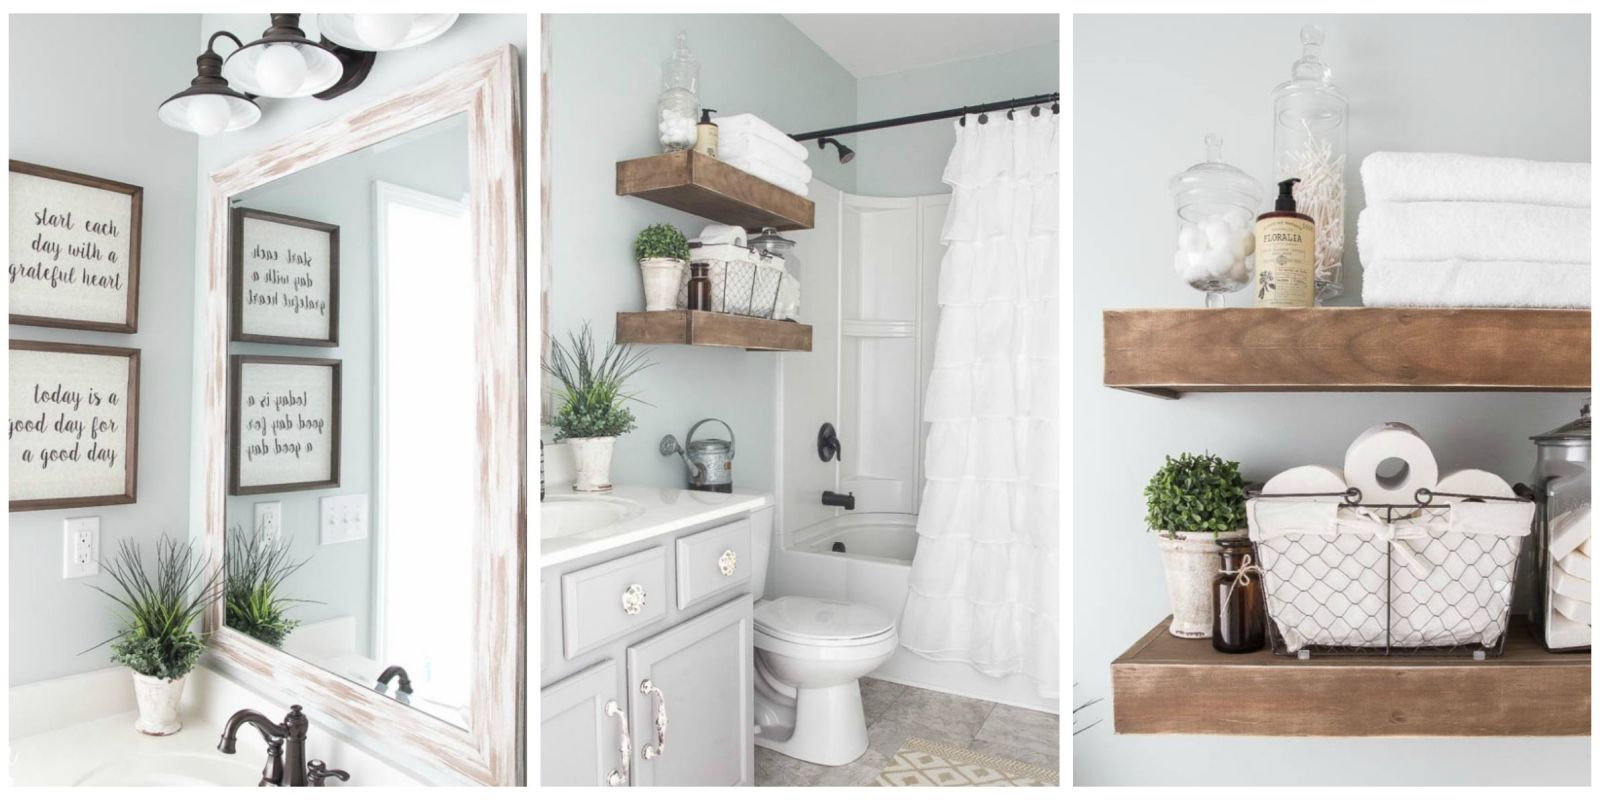 Farmhouse Bathroom Renovation Ideas - Bless'er House Blog ... on Farmhouse Bathroom Ideas  id=41175